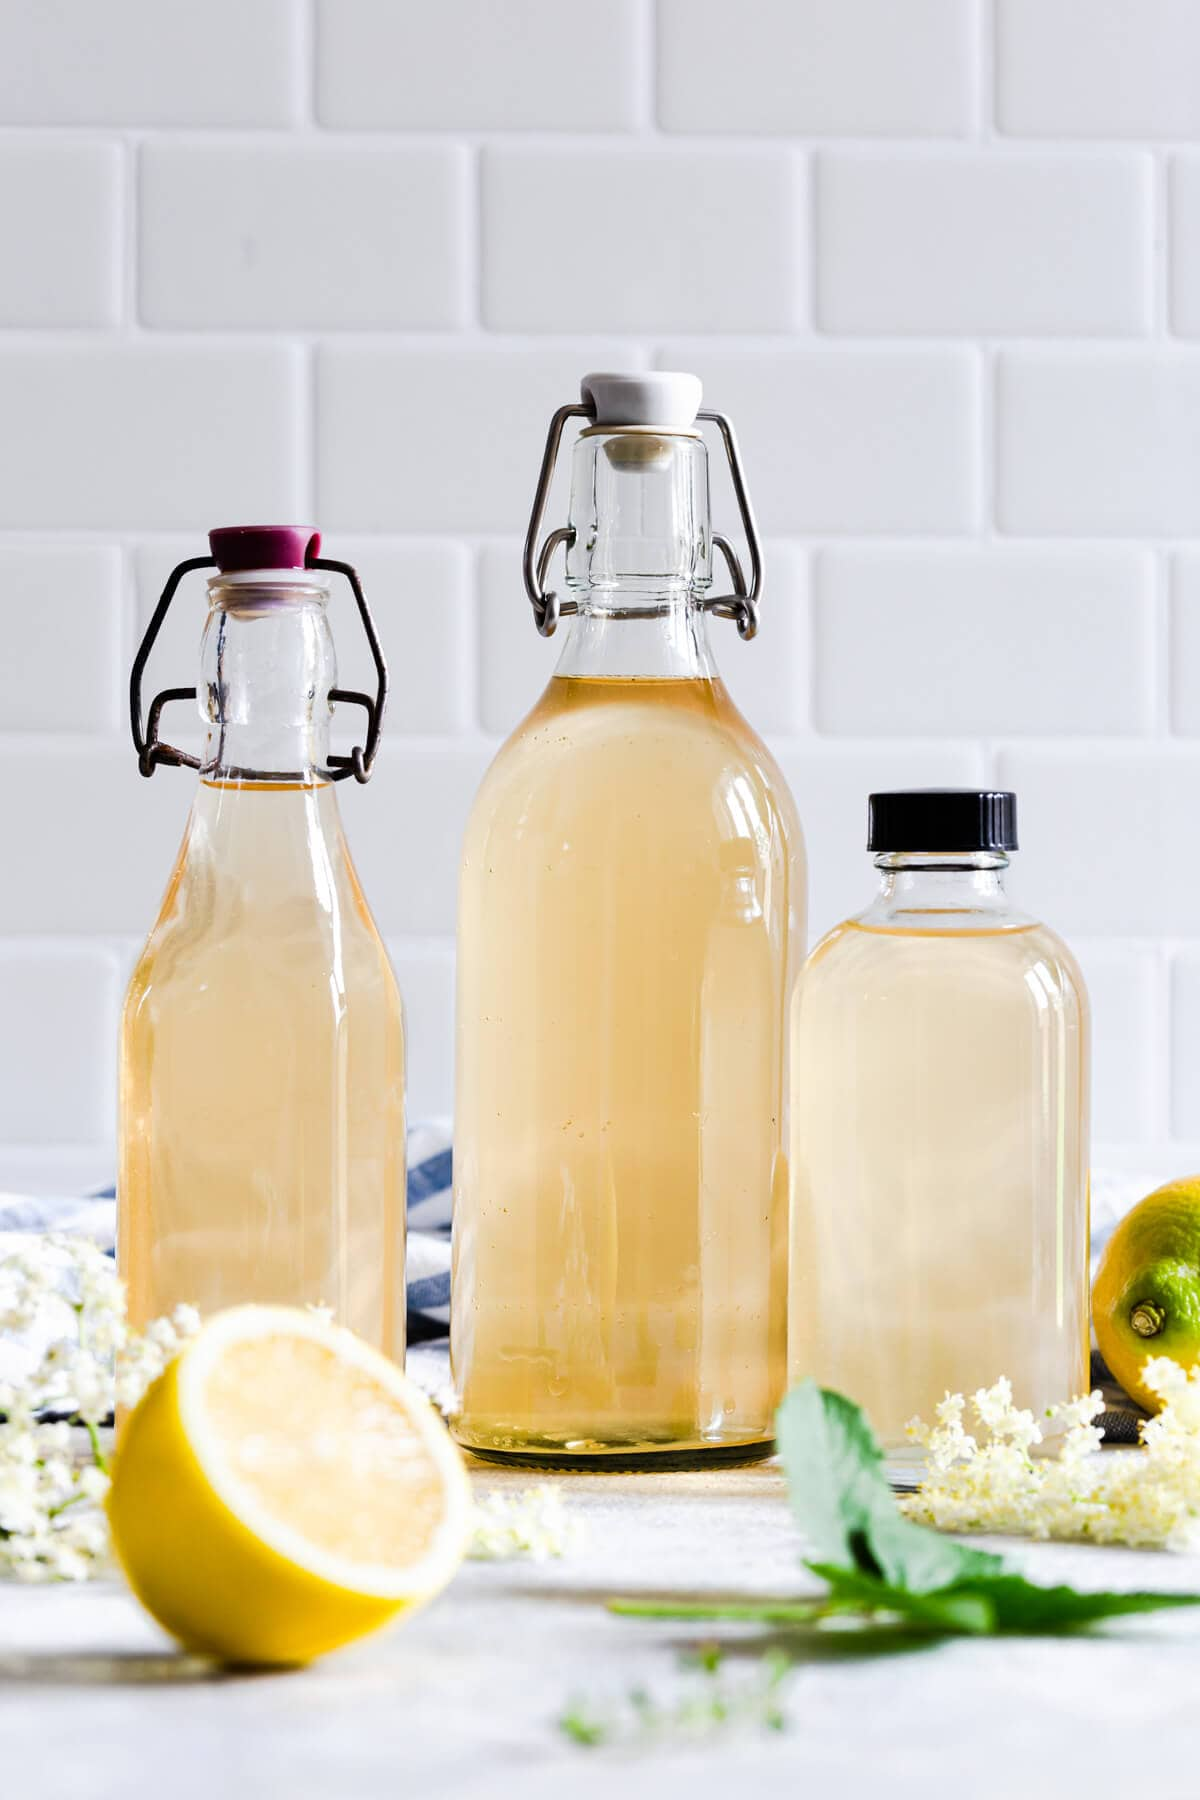 straight ahead view of 3 different glass bottles filled with elderflower cordial